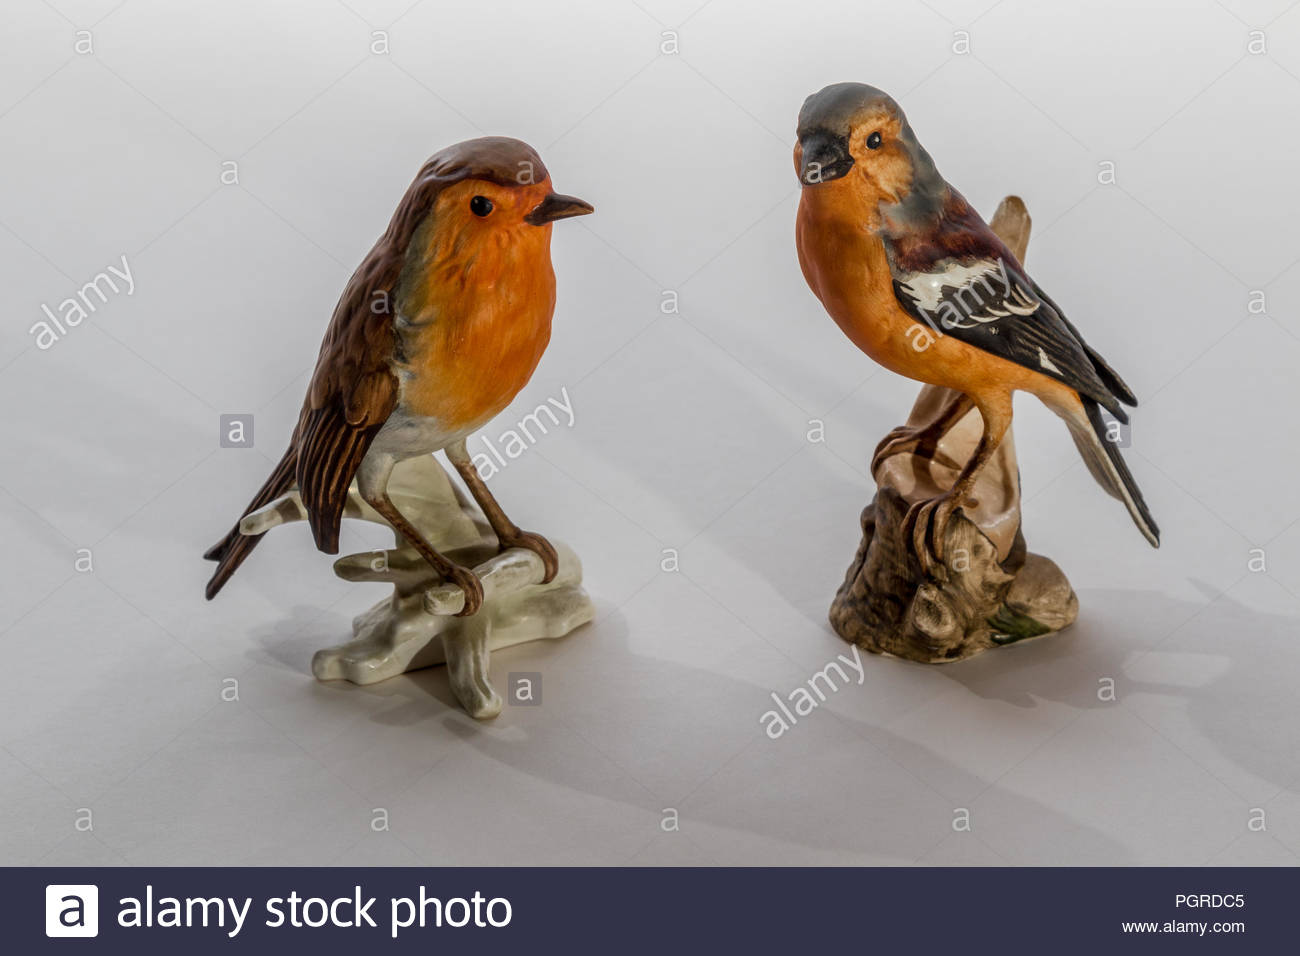 Goebel porcelain bird ornaments manufactured in West Germany in the 1970's on a white background. - Stock Image